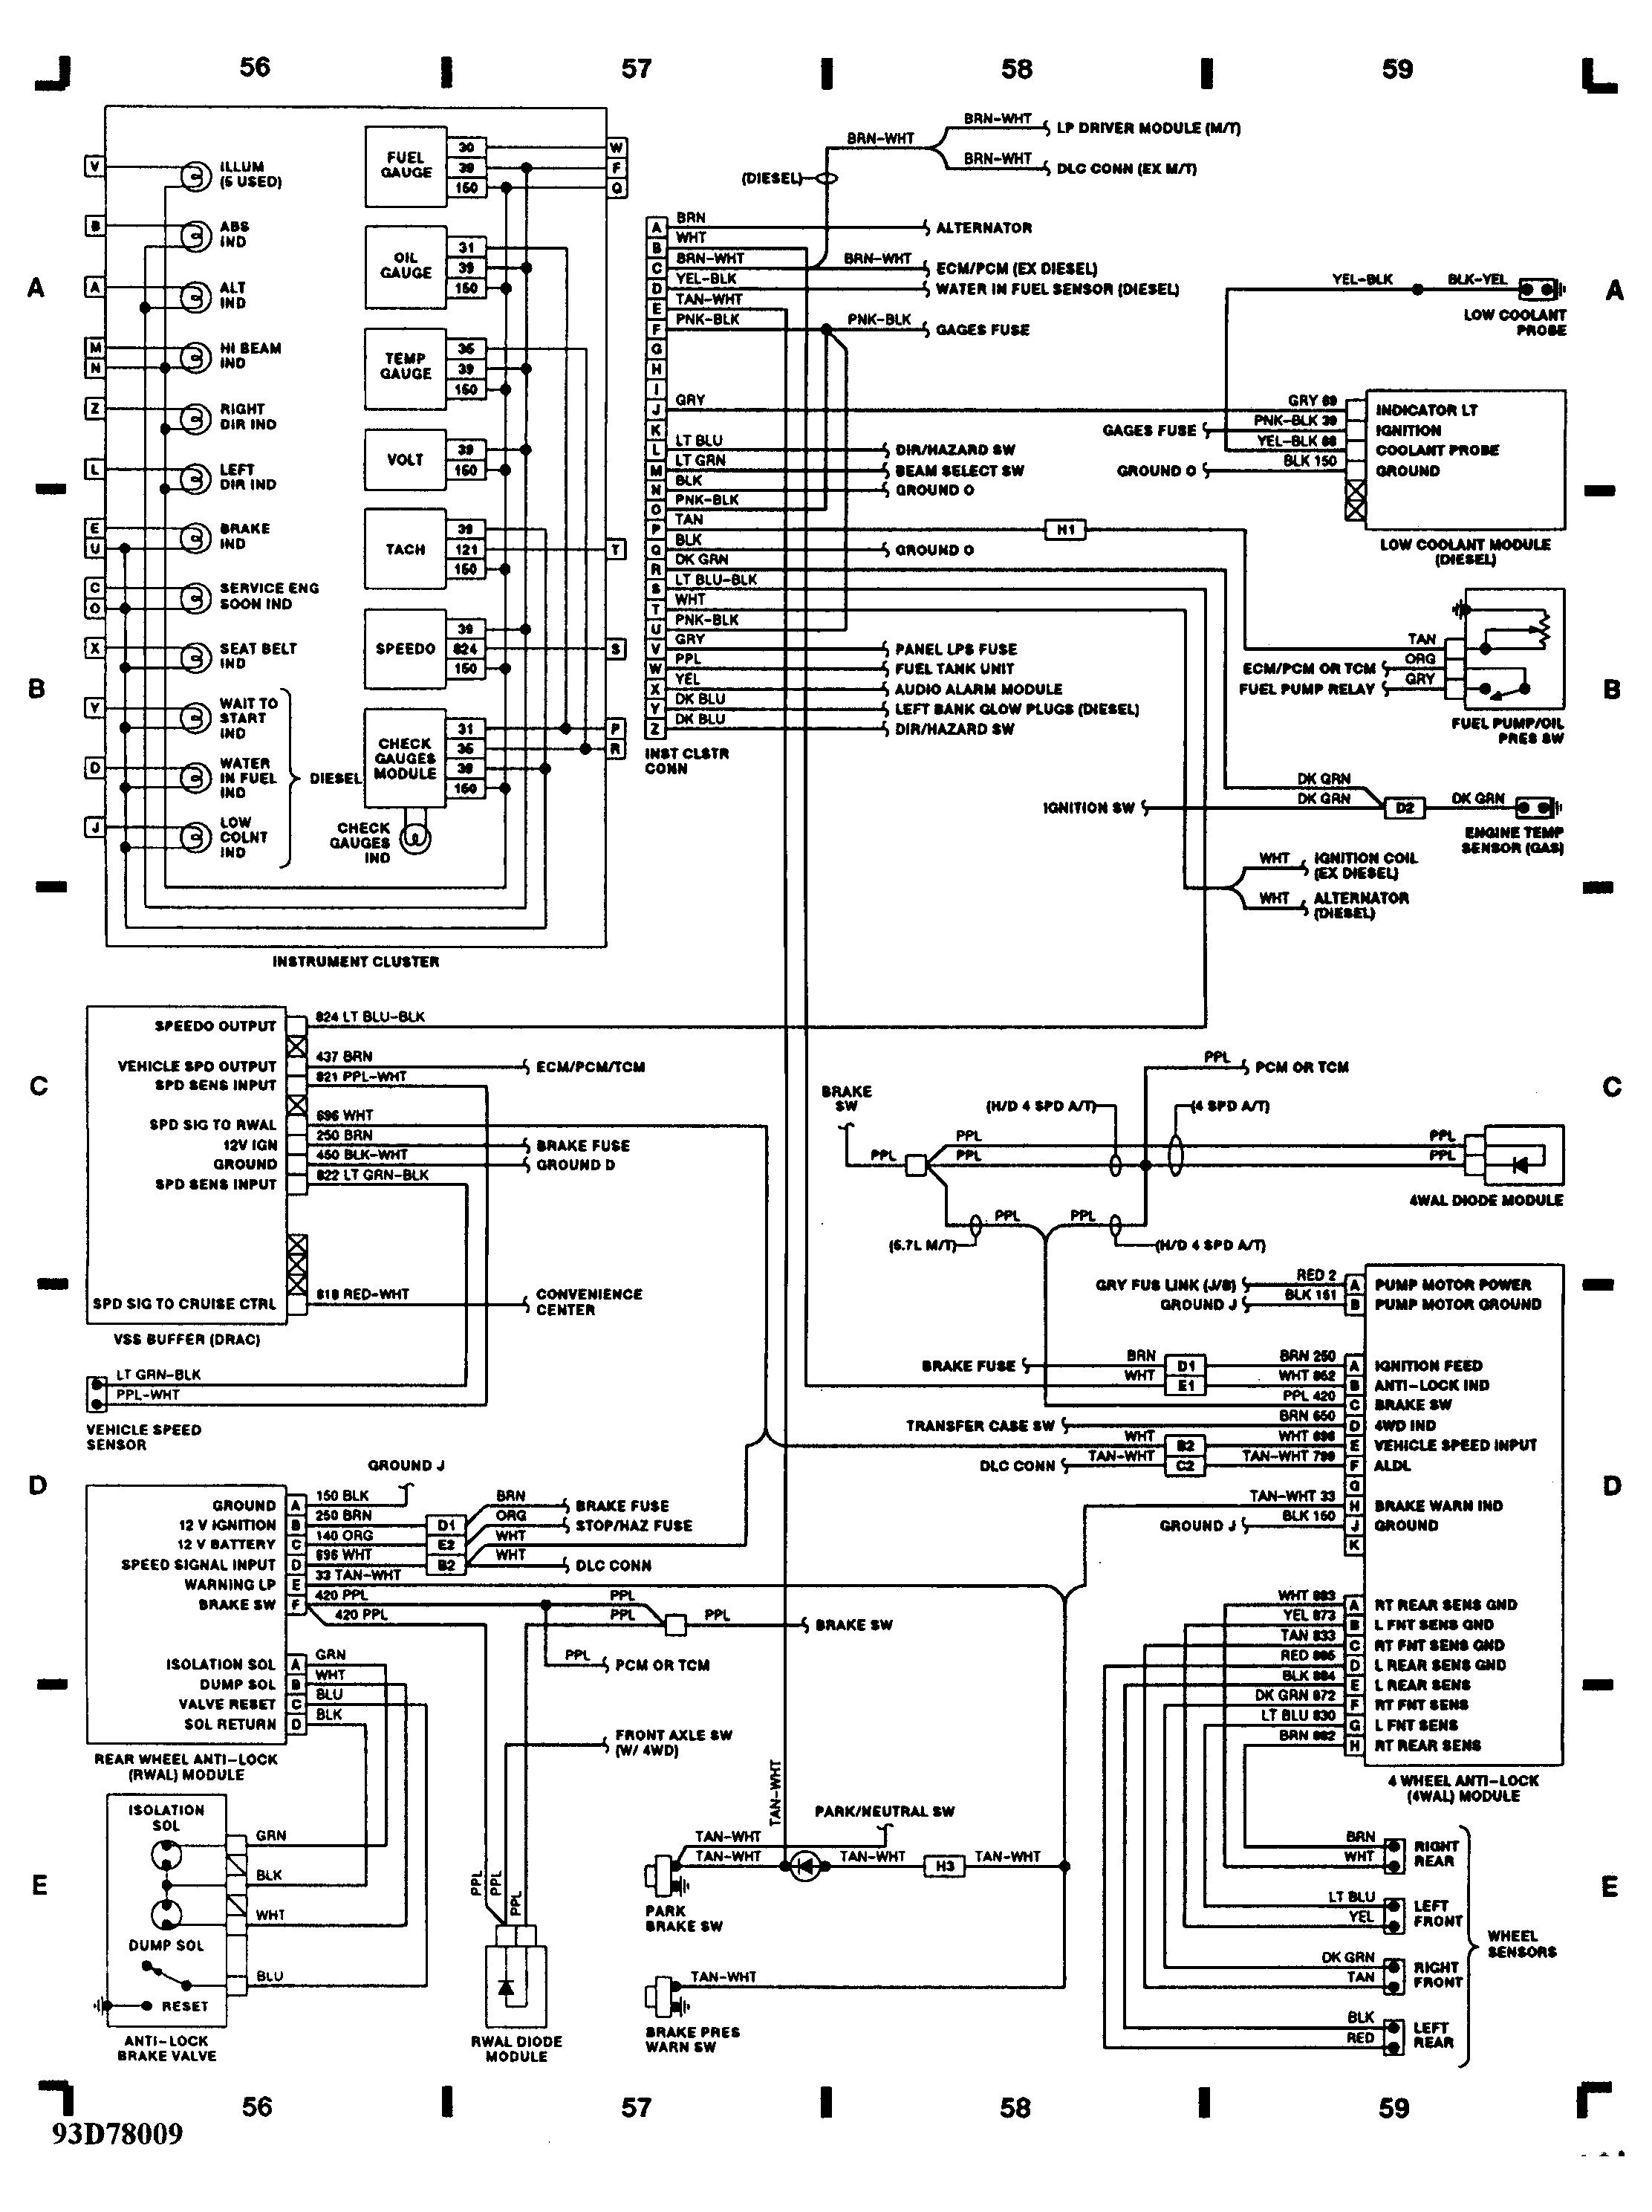 Car Signal Light Wiring Diagram 1993 Chevy Silverado Tail Light Wiring Diagram Wiring Schematic Of Car Signal Light Wiring Diagram